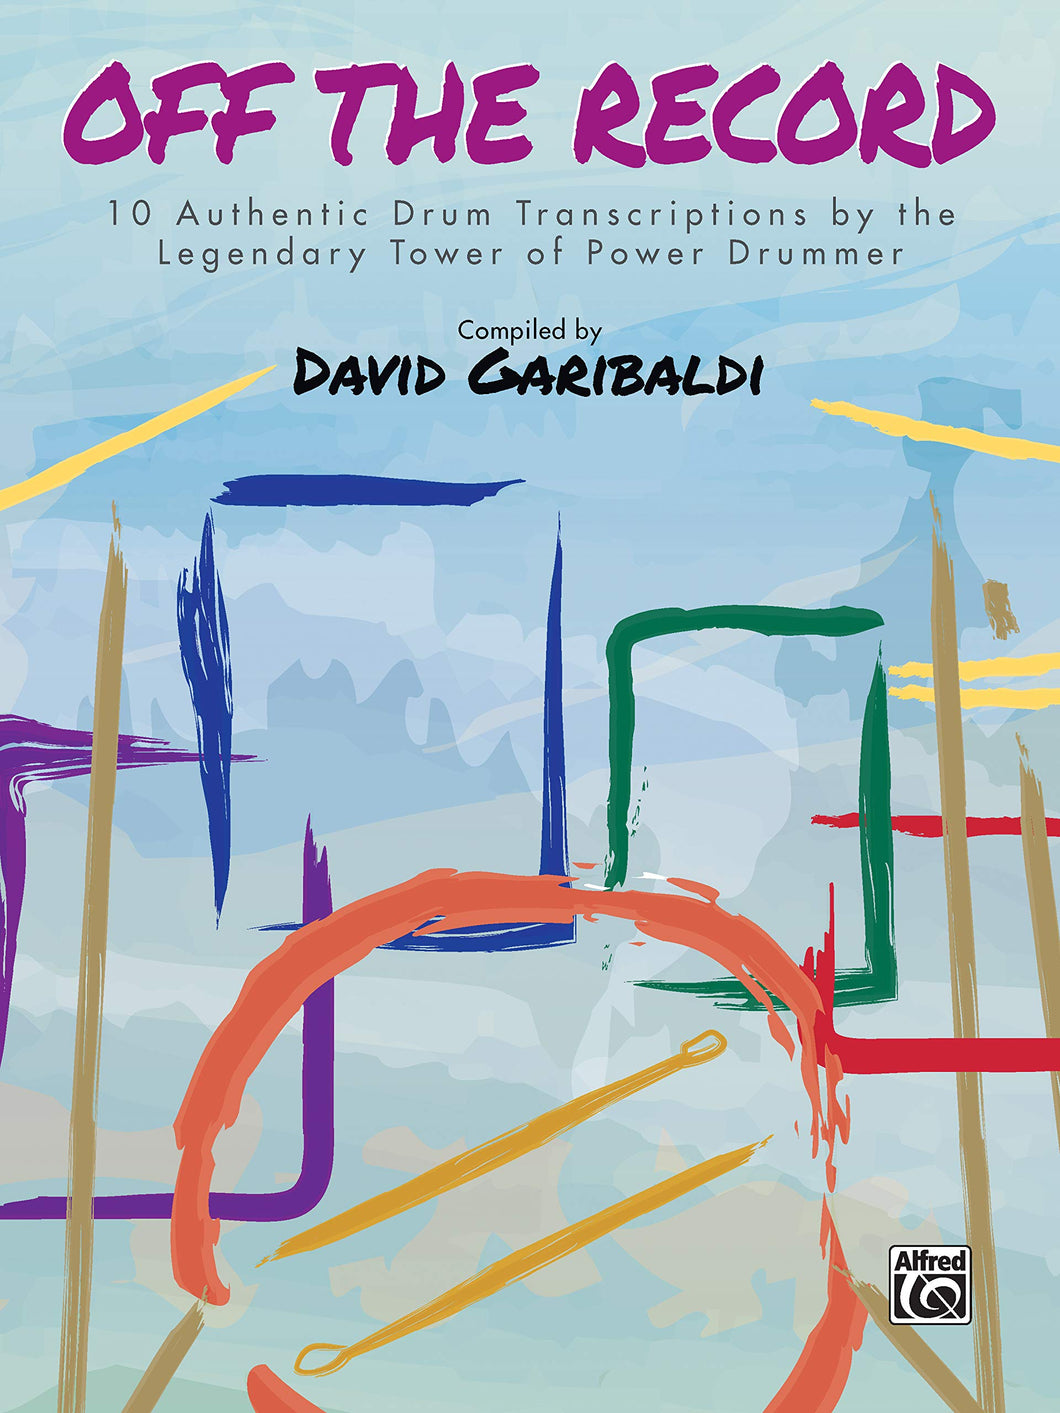 Drop It in the Slot - David Garibaldi - Collection of Drum Transcriptions / Drum Sheet Music - Alfred Music DGOTR